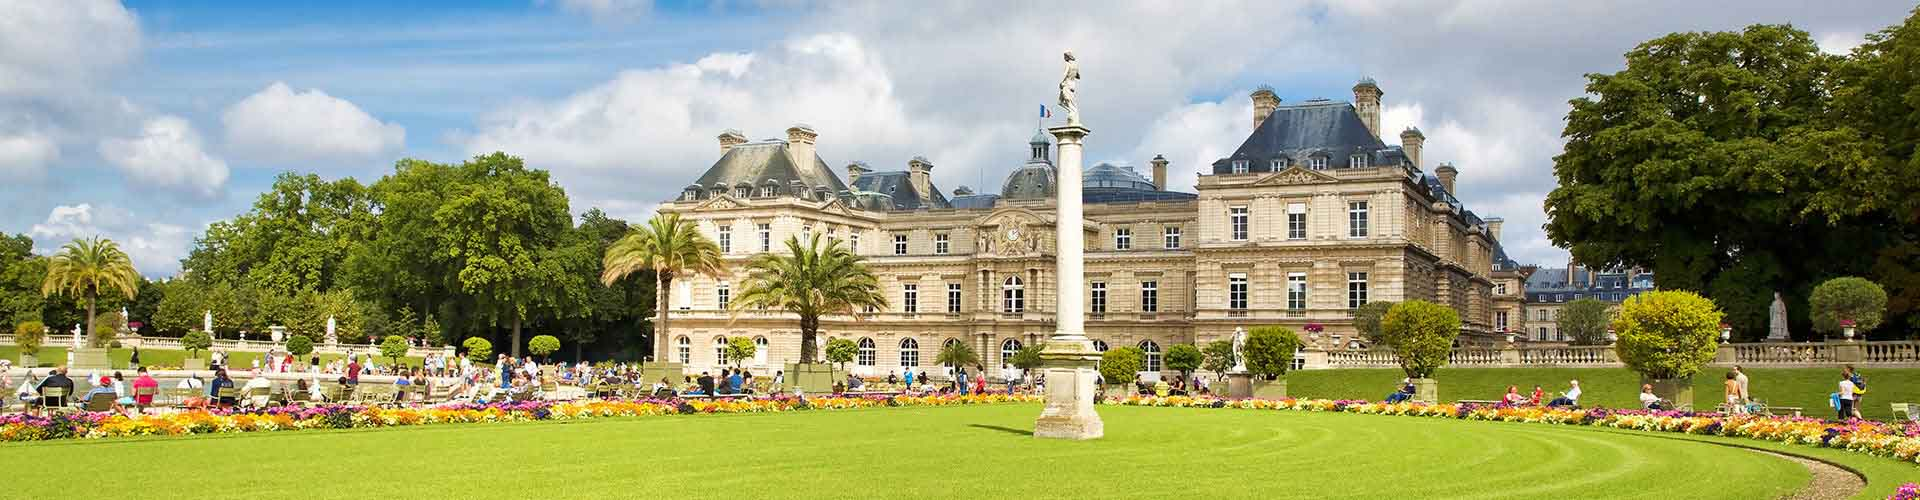 Paris - Hostels in Paris - Dorms.com ® Hostels